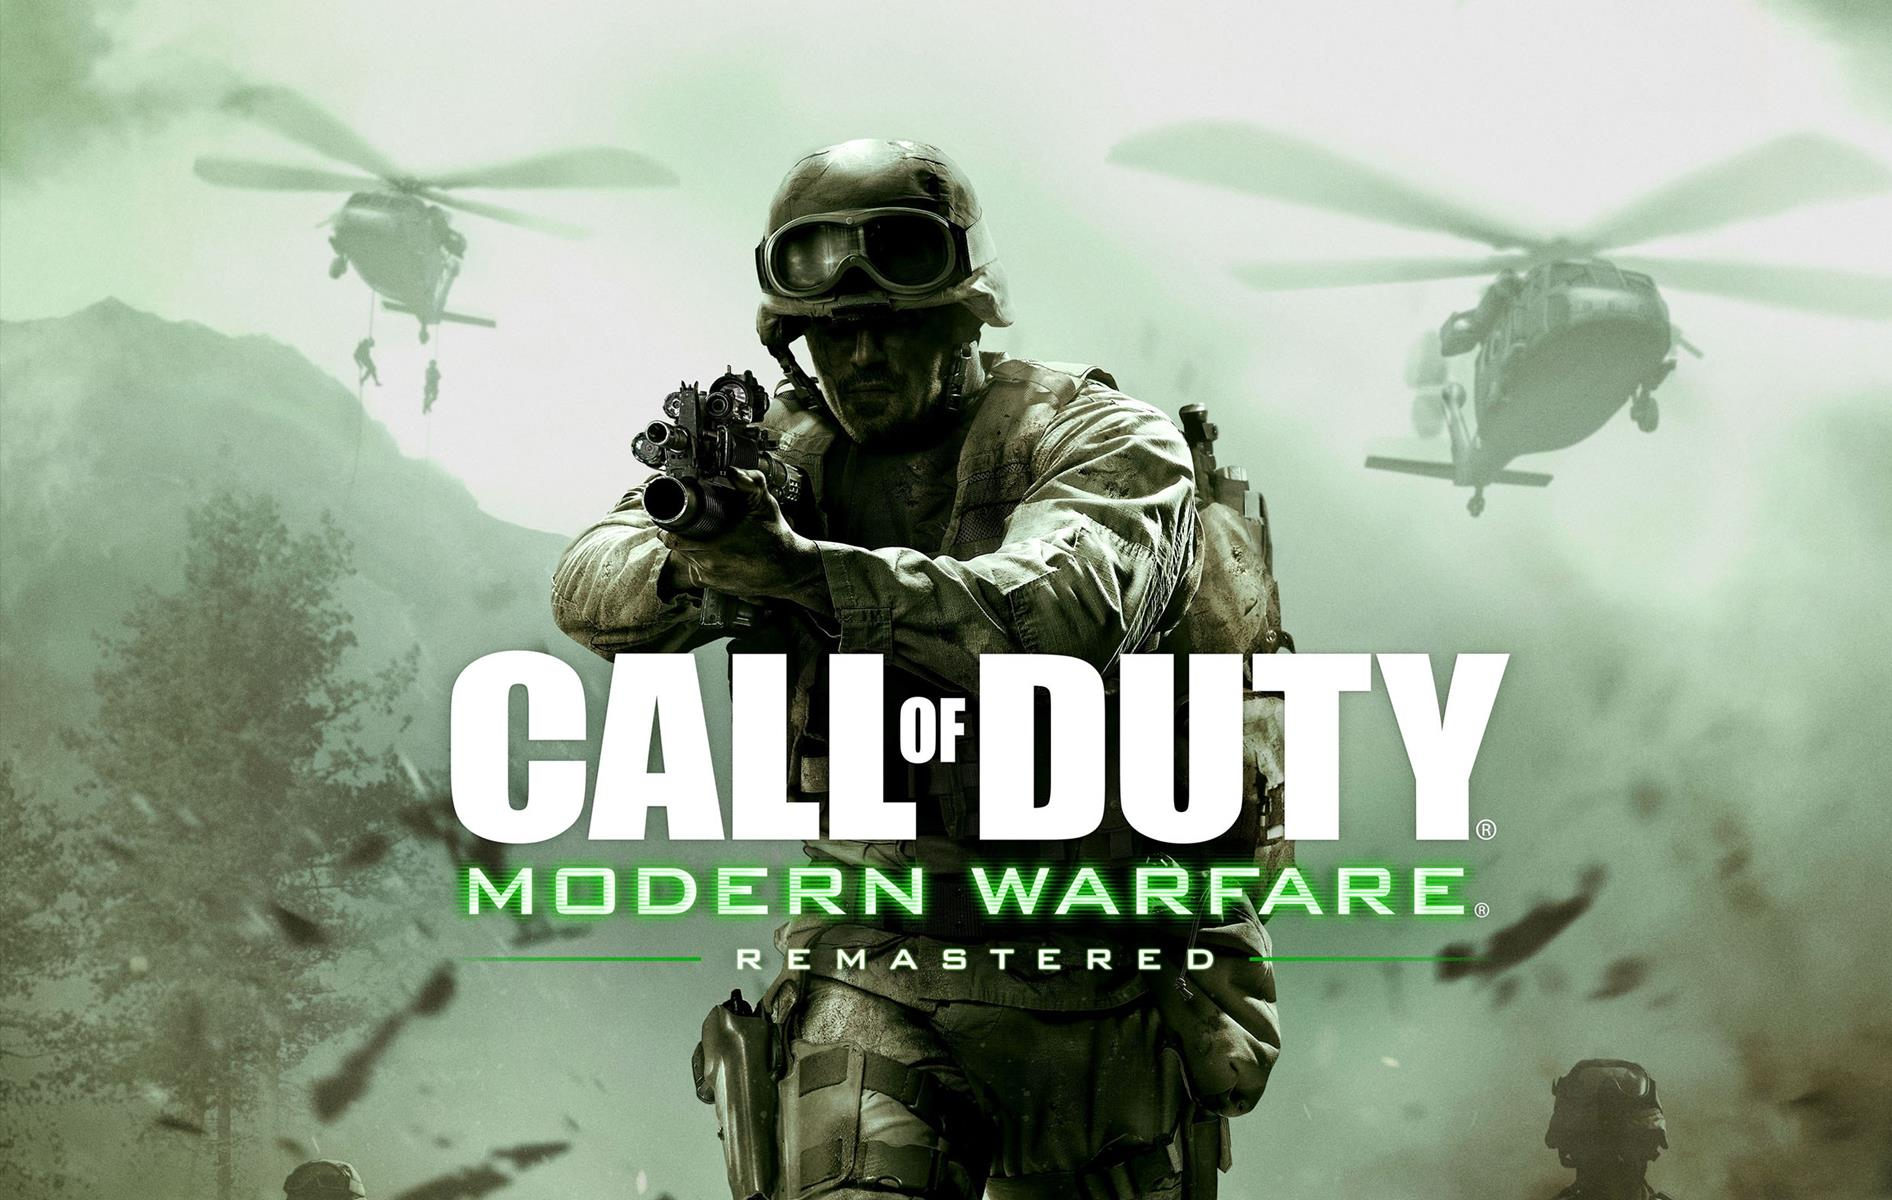 Call of Duty: Modern Warfare Remastered Goes Standalone For $40